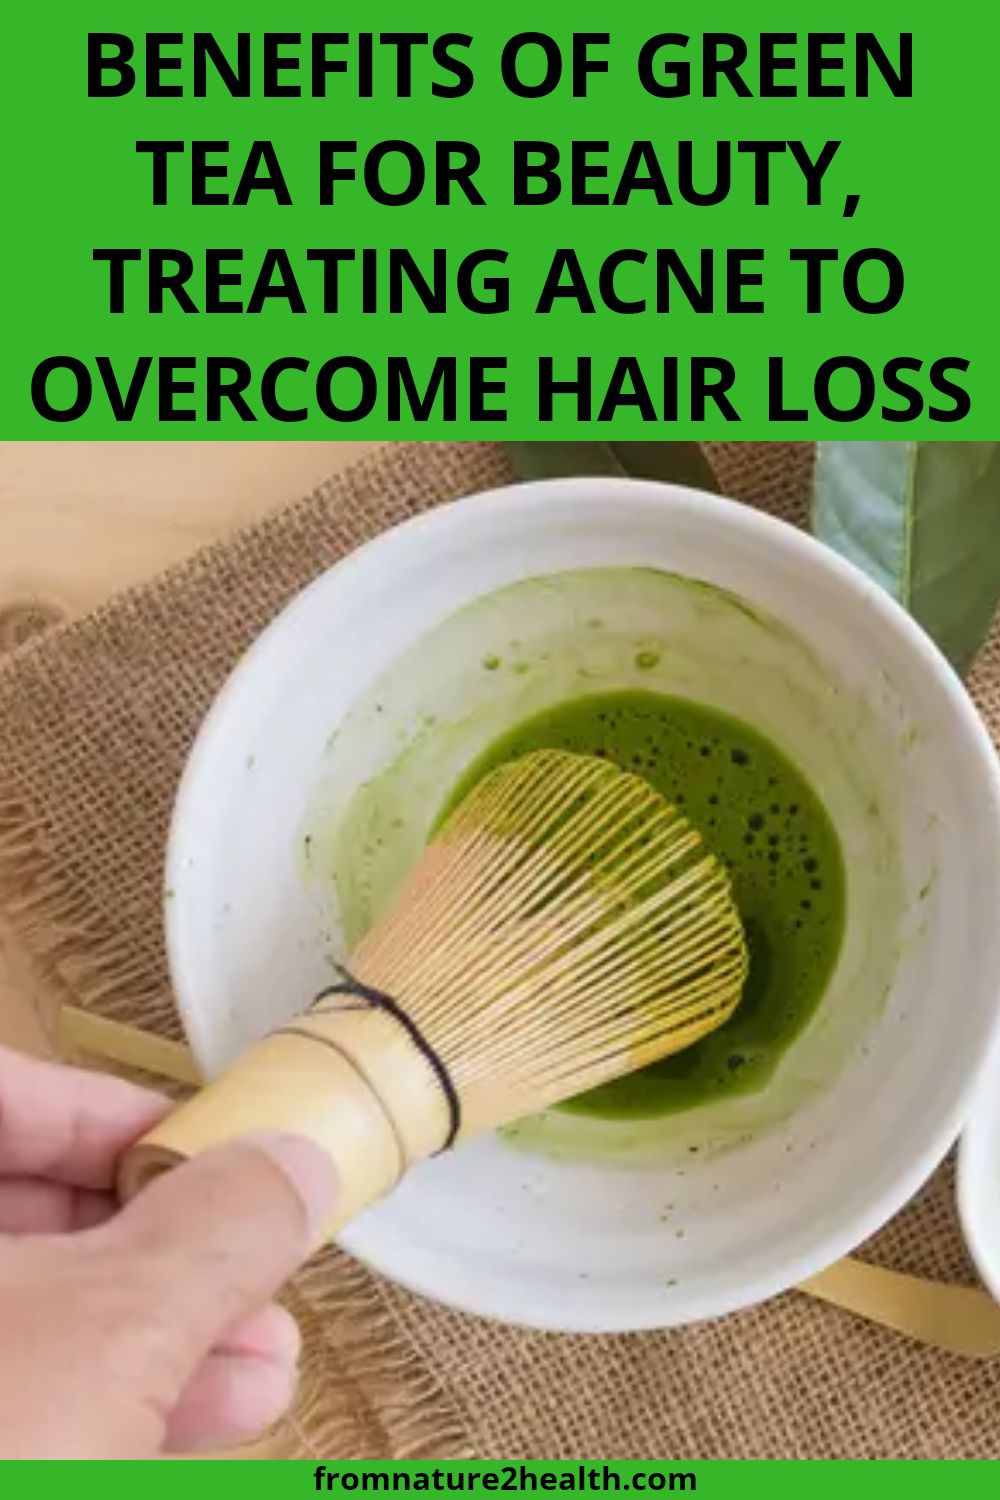 Benefits of Green Tea for Beauty, Treating Acne to Overcome Hair Loss